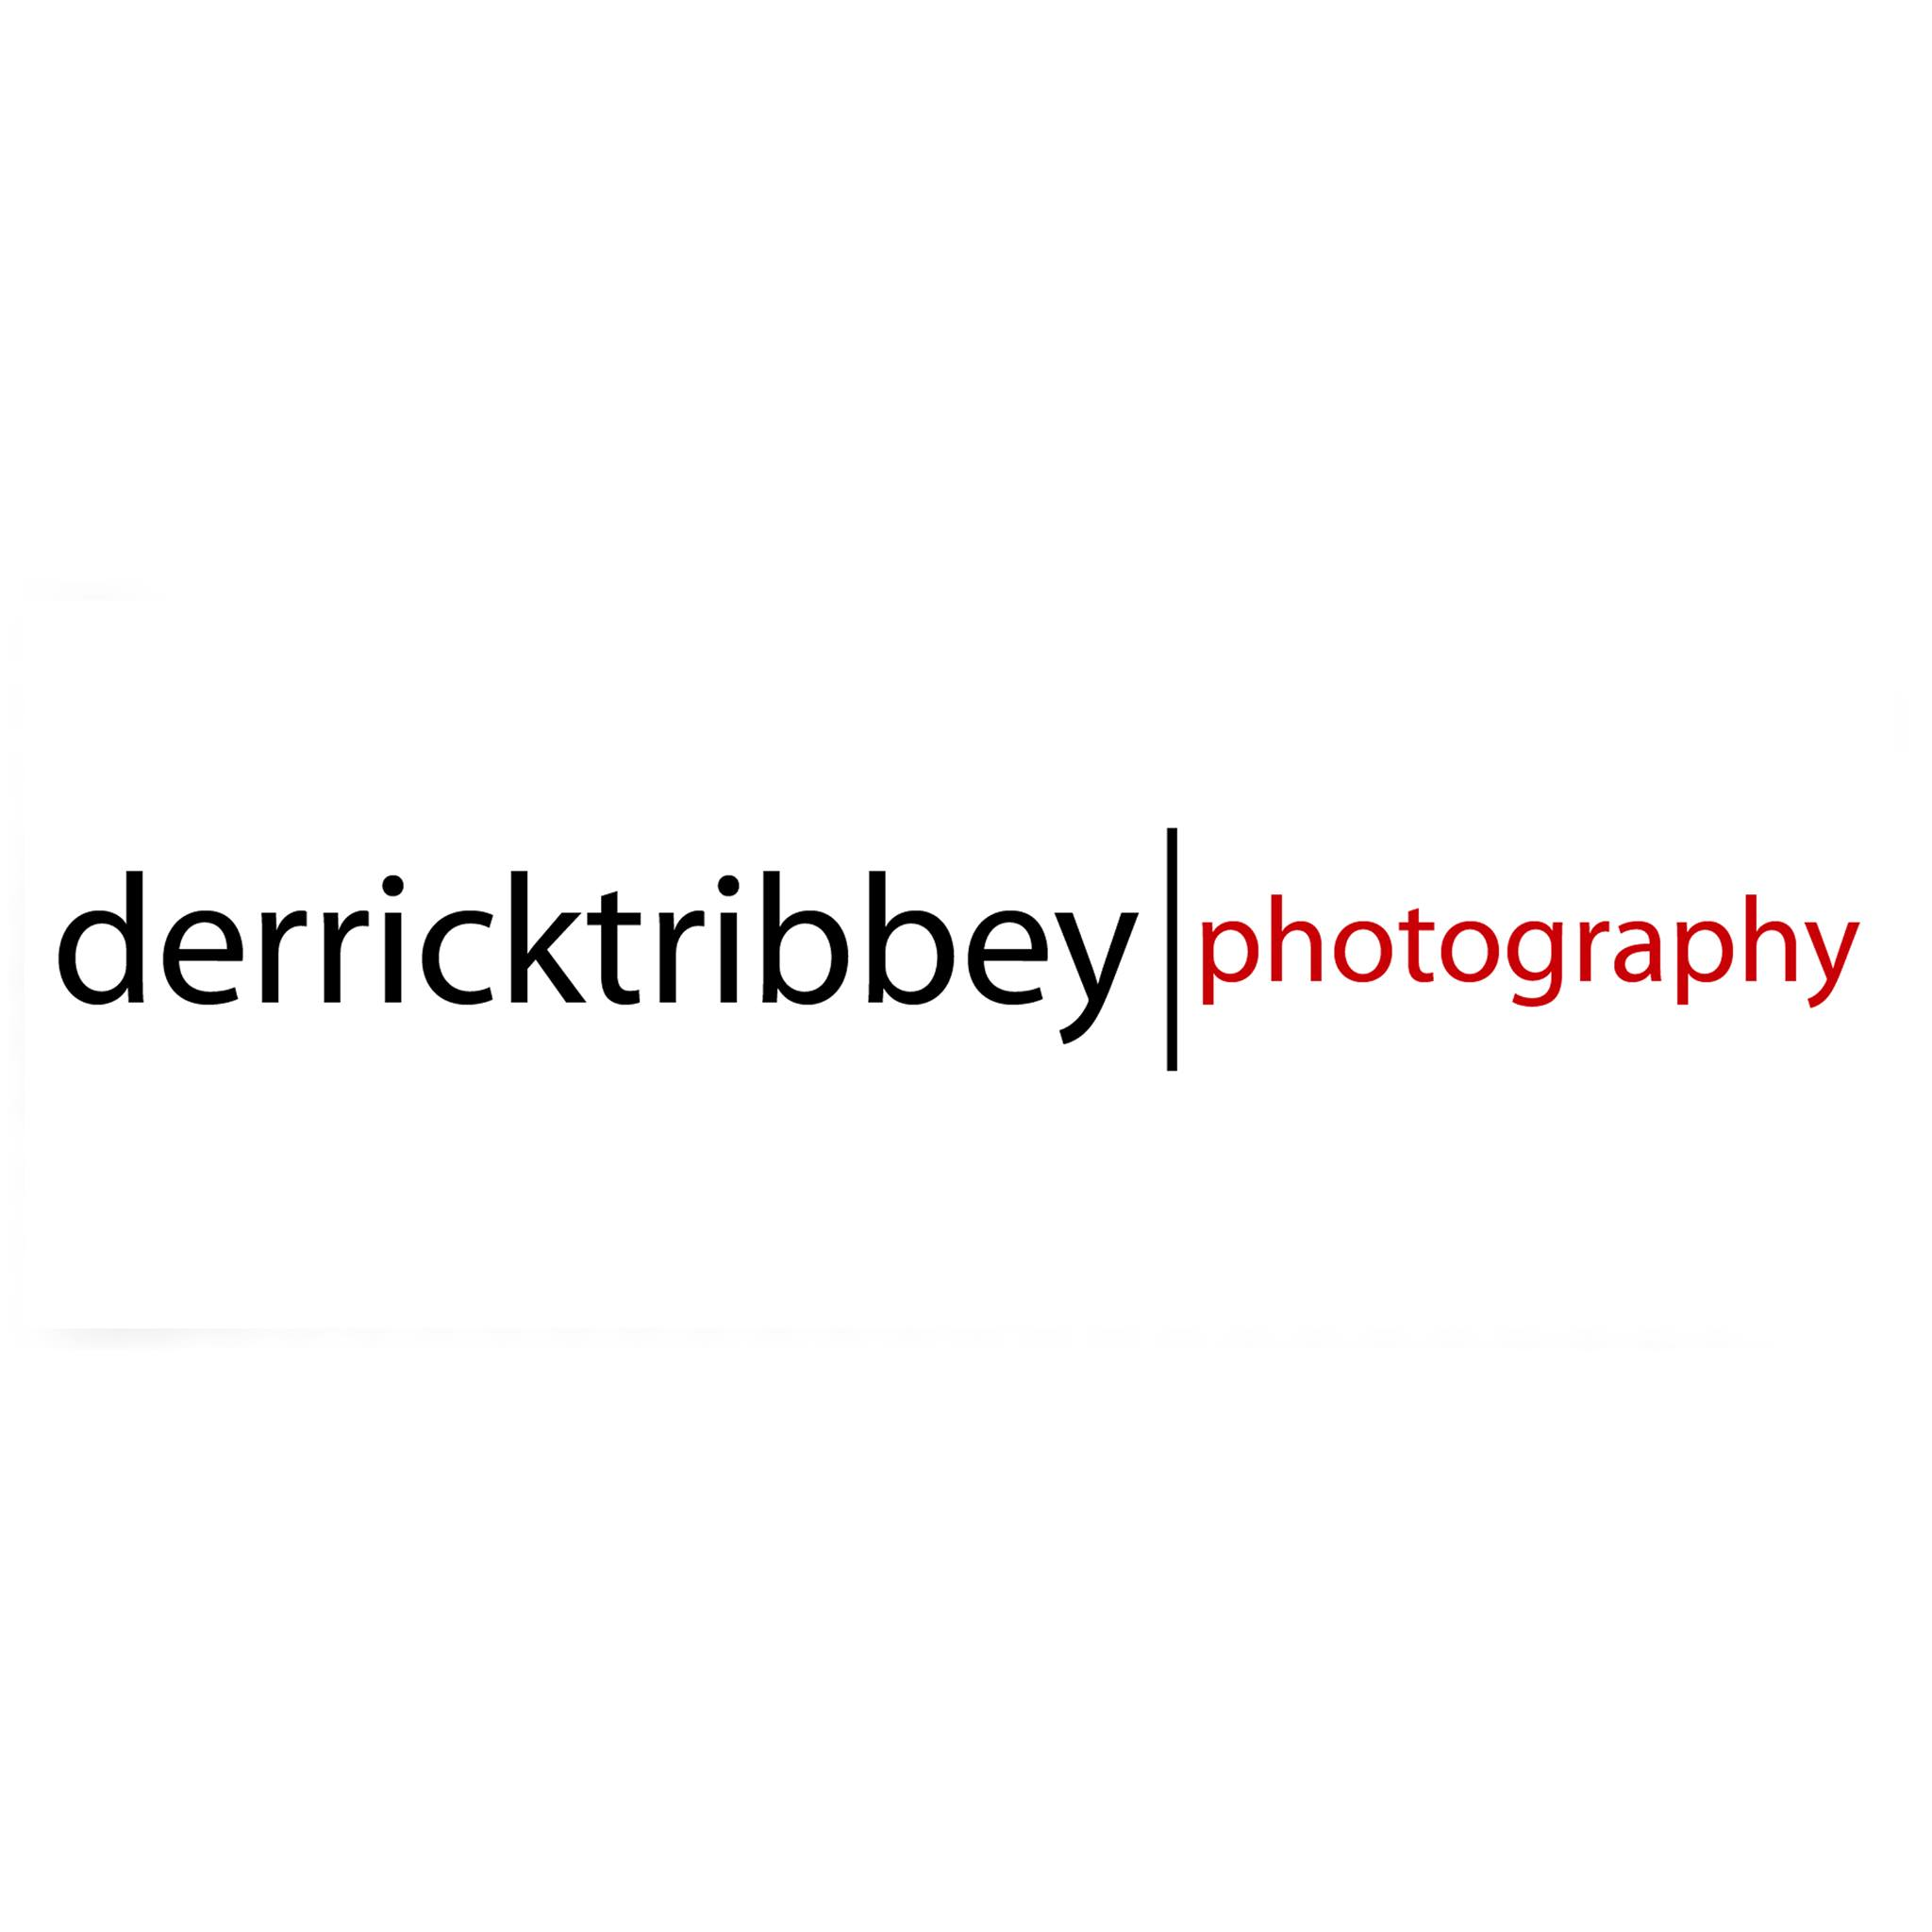 Derrick Tribbey Photography